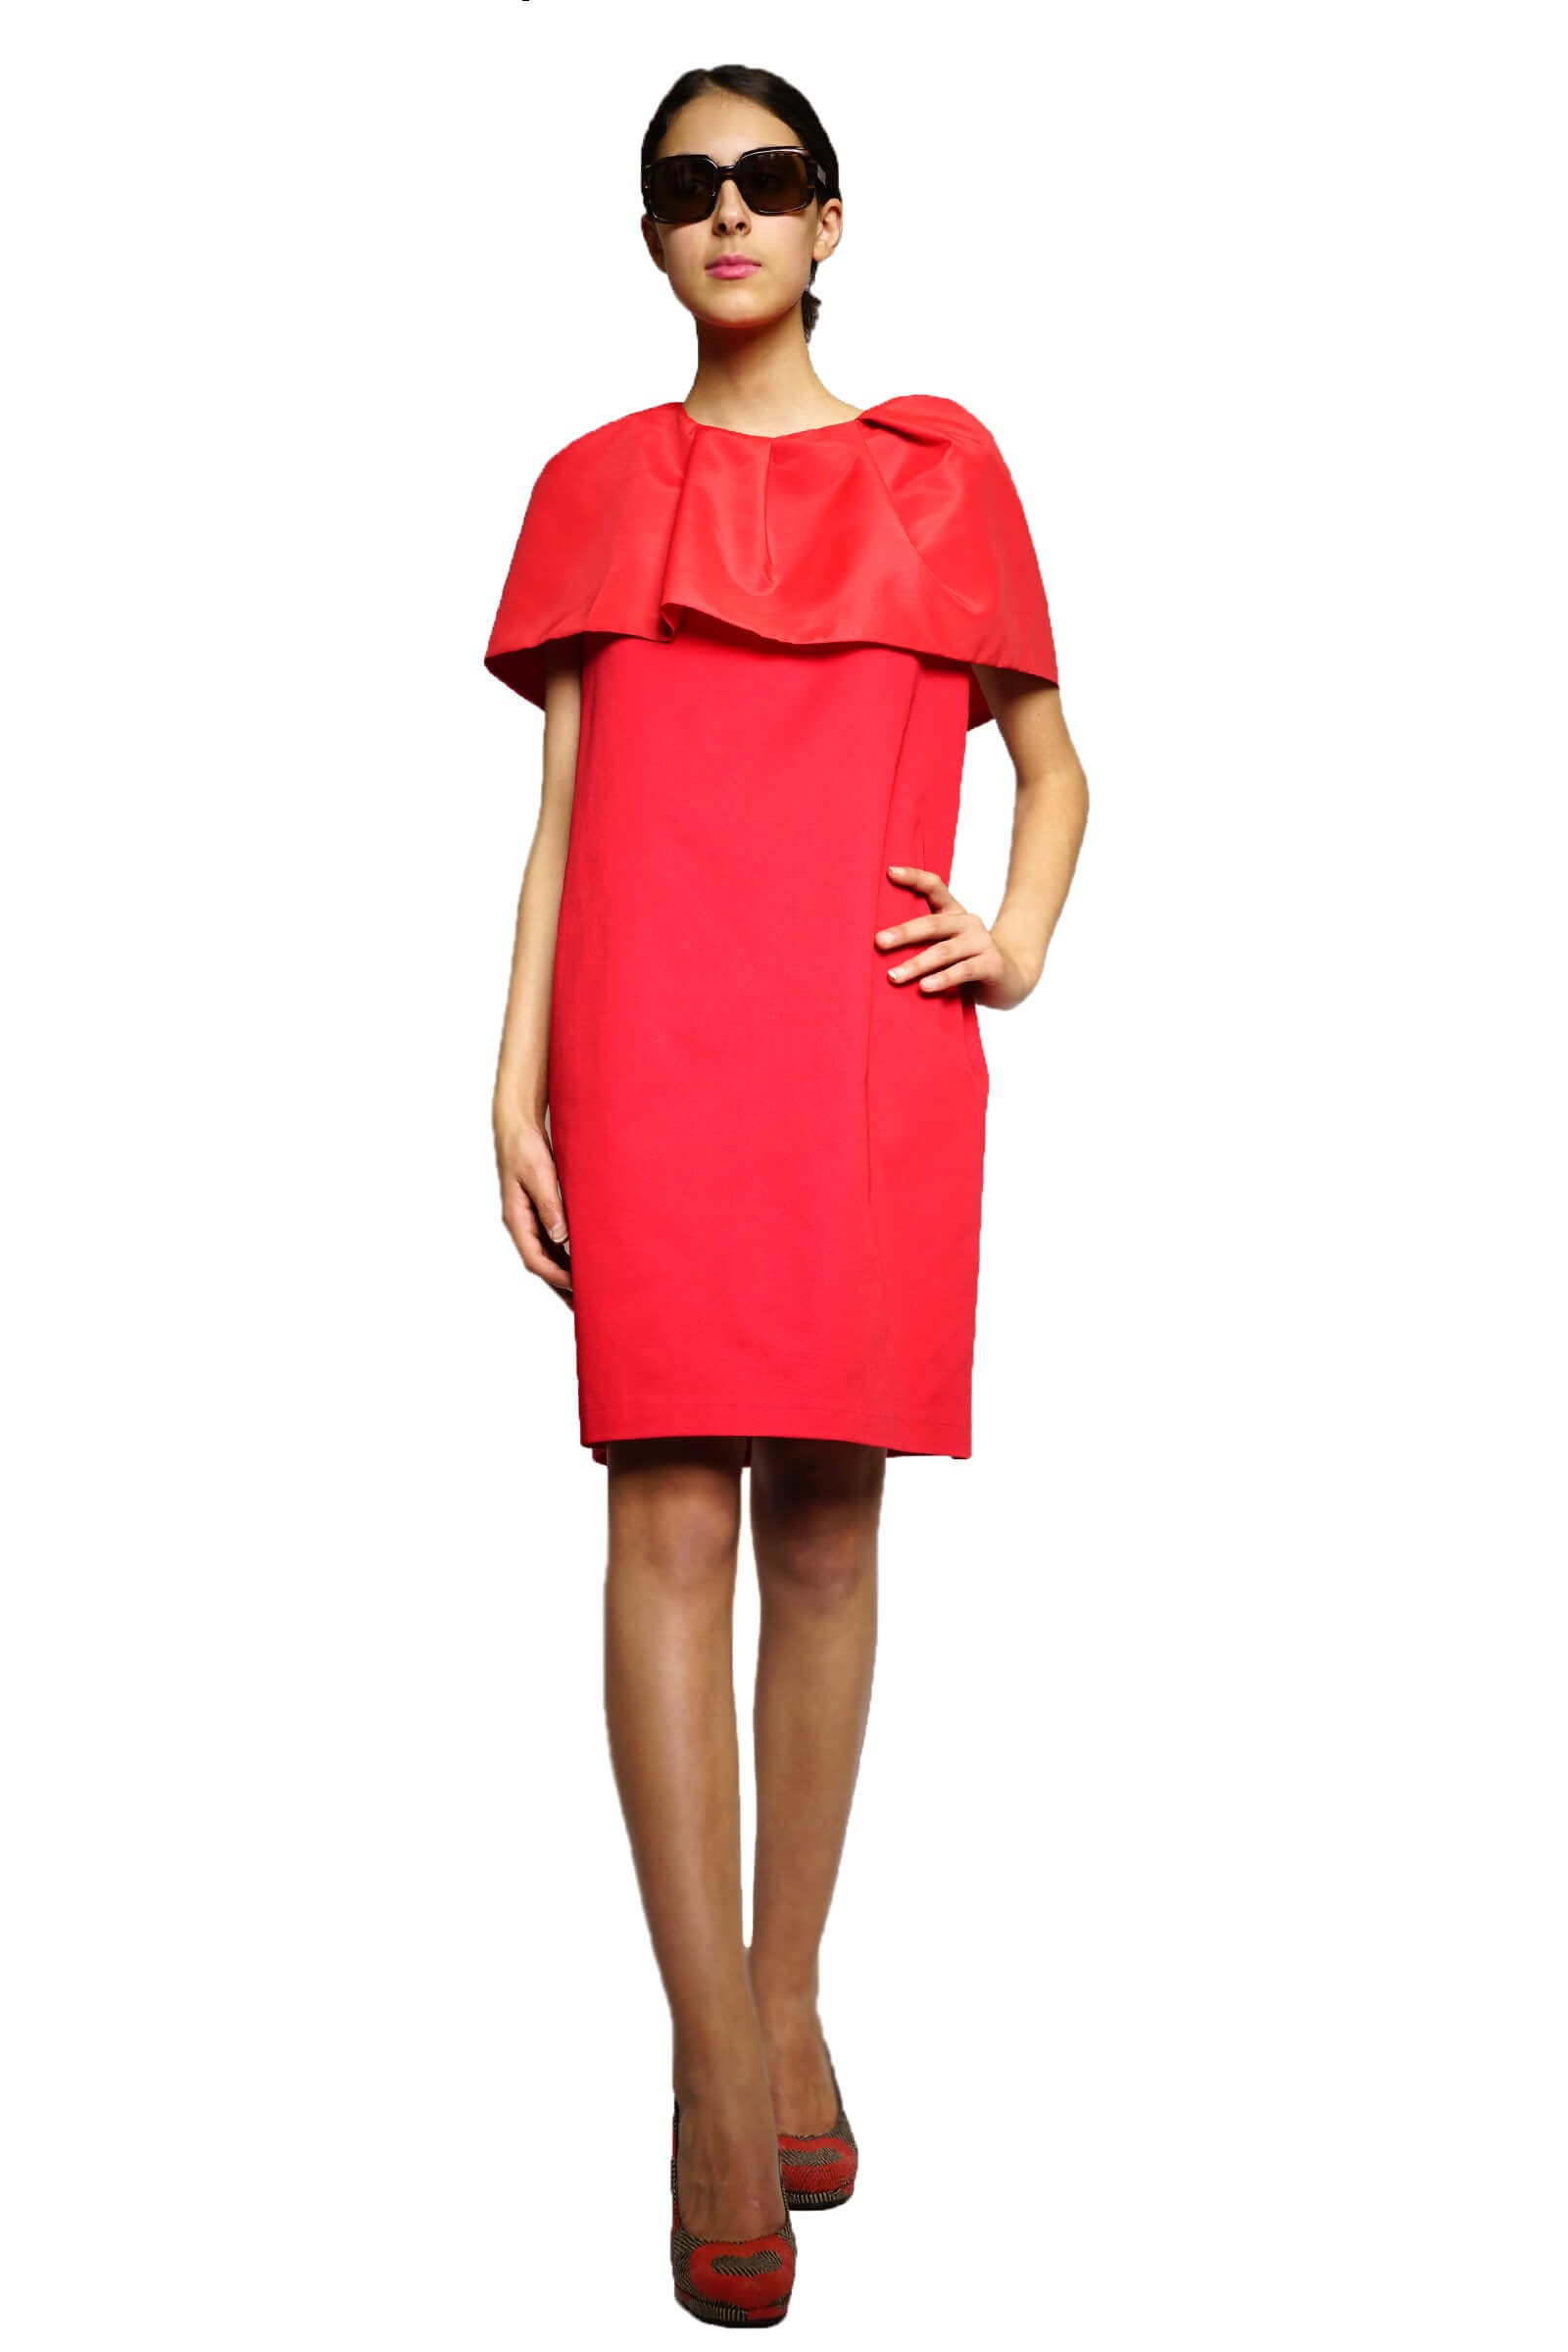 Red dress with ruffle